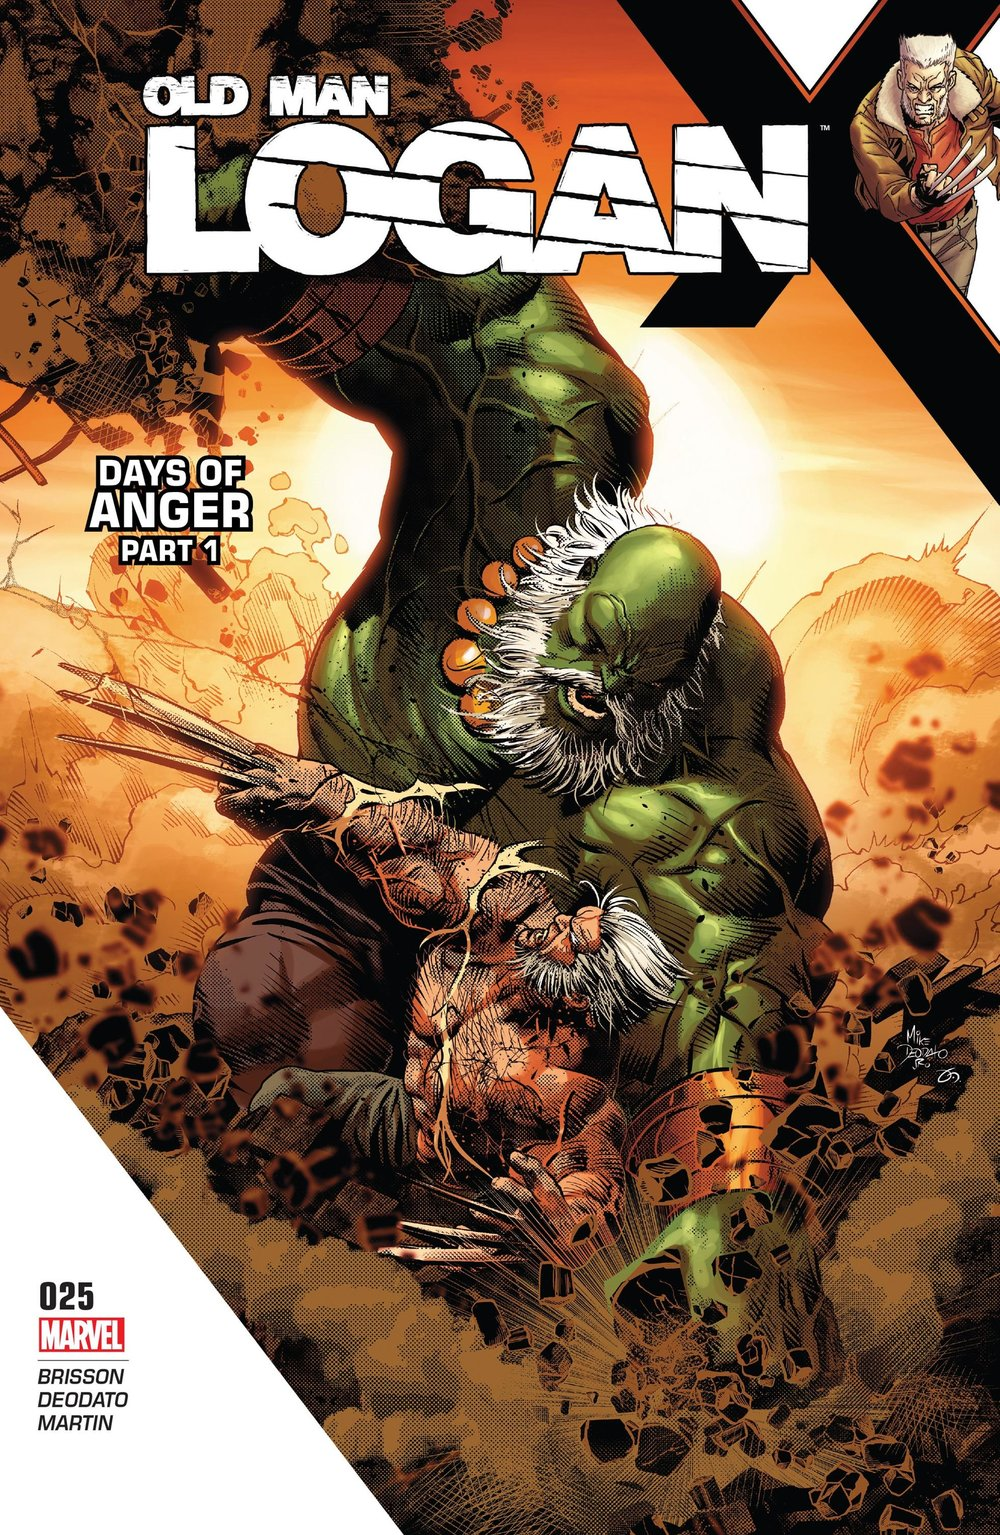 Old Man Logan #25 (Marvel) - By Ed Brisson / Artist: Mike Deodato